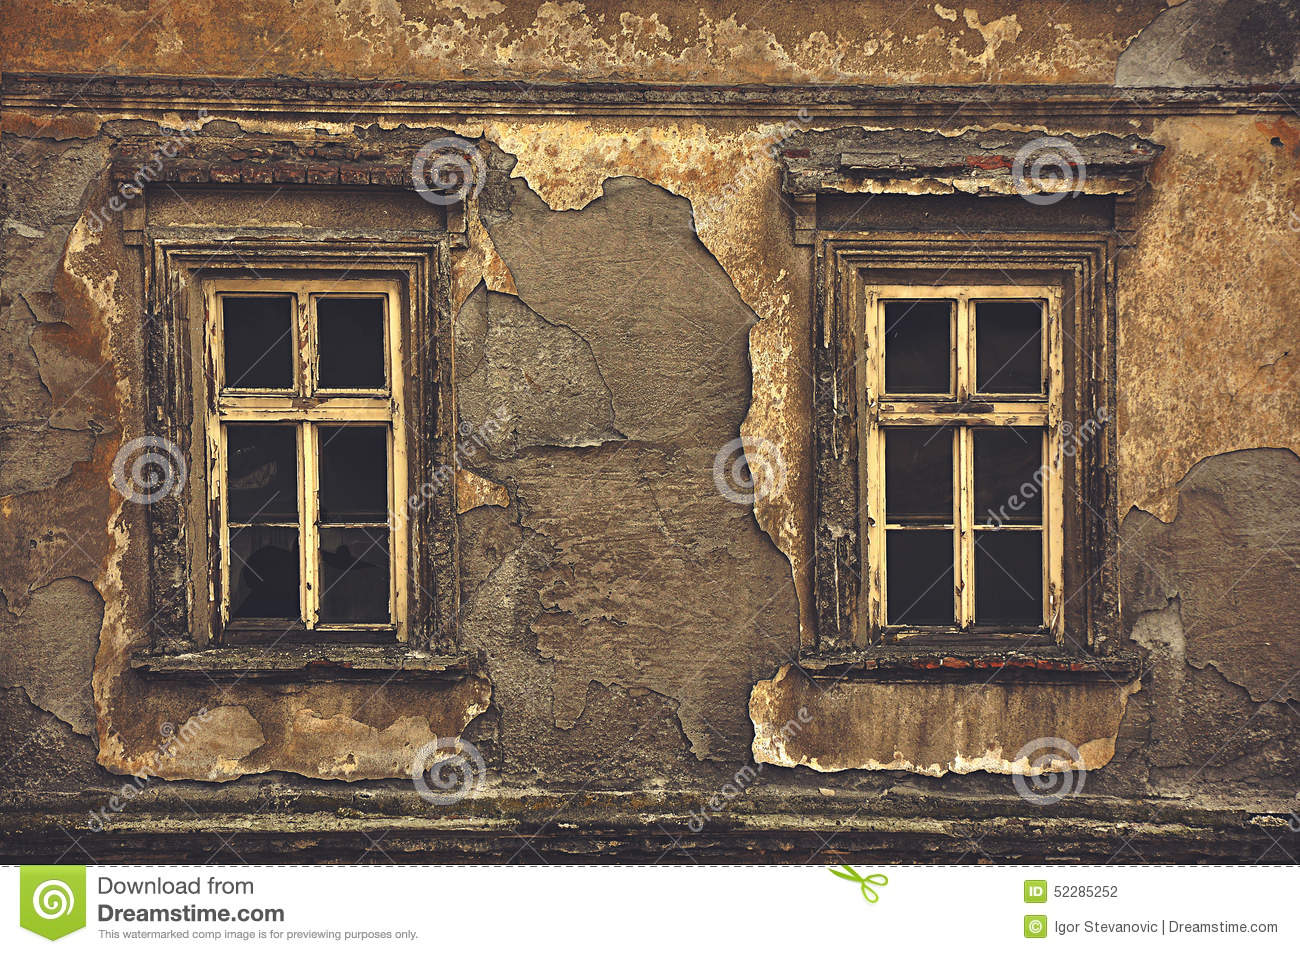 Windows house exterior - Old Windows On Ruined House Exterior Wall Stock Photo Image